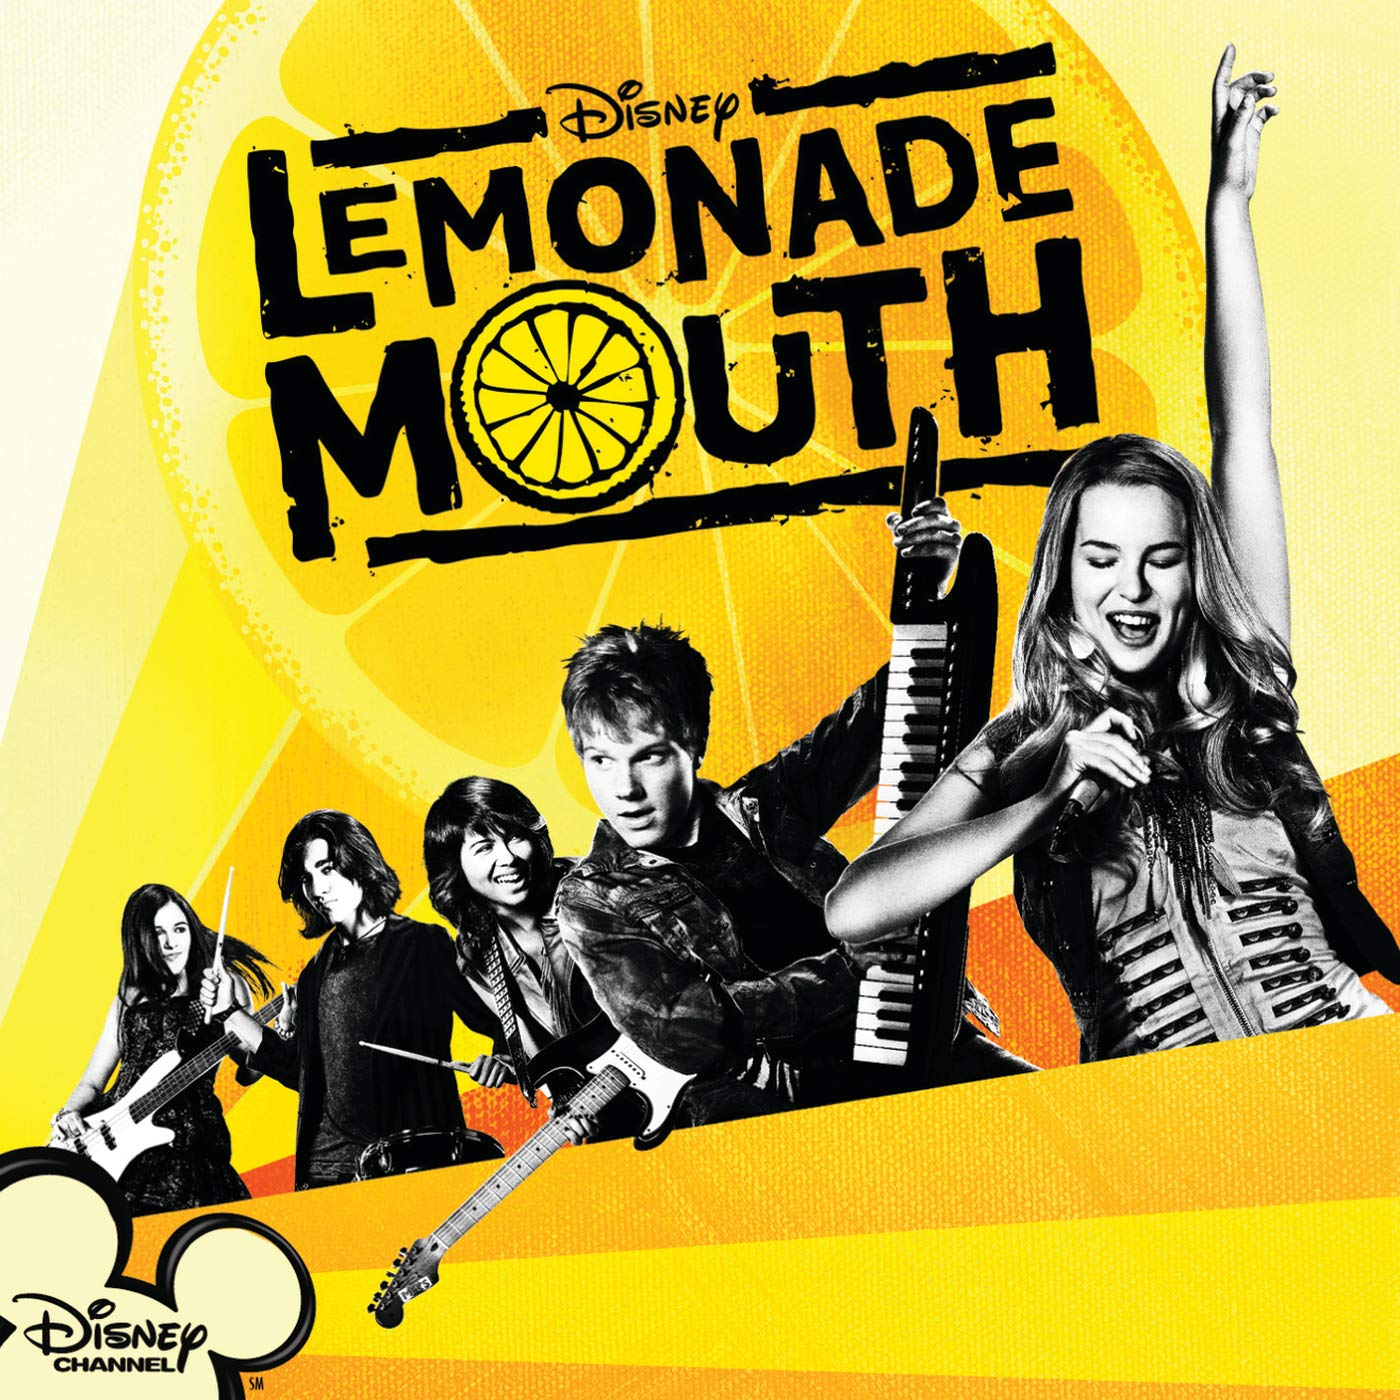 bande originale soundtrack ost score lemonade mouth disney channel